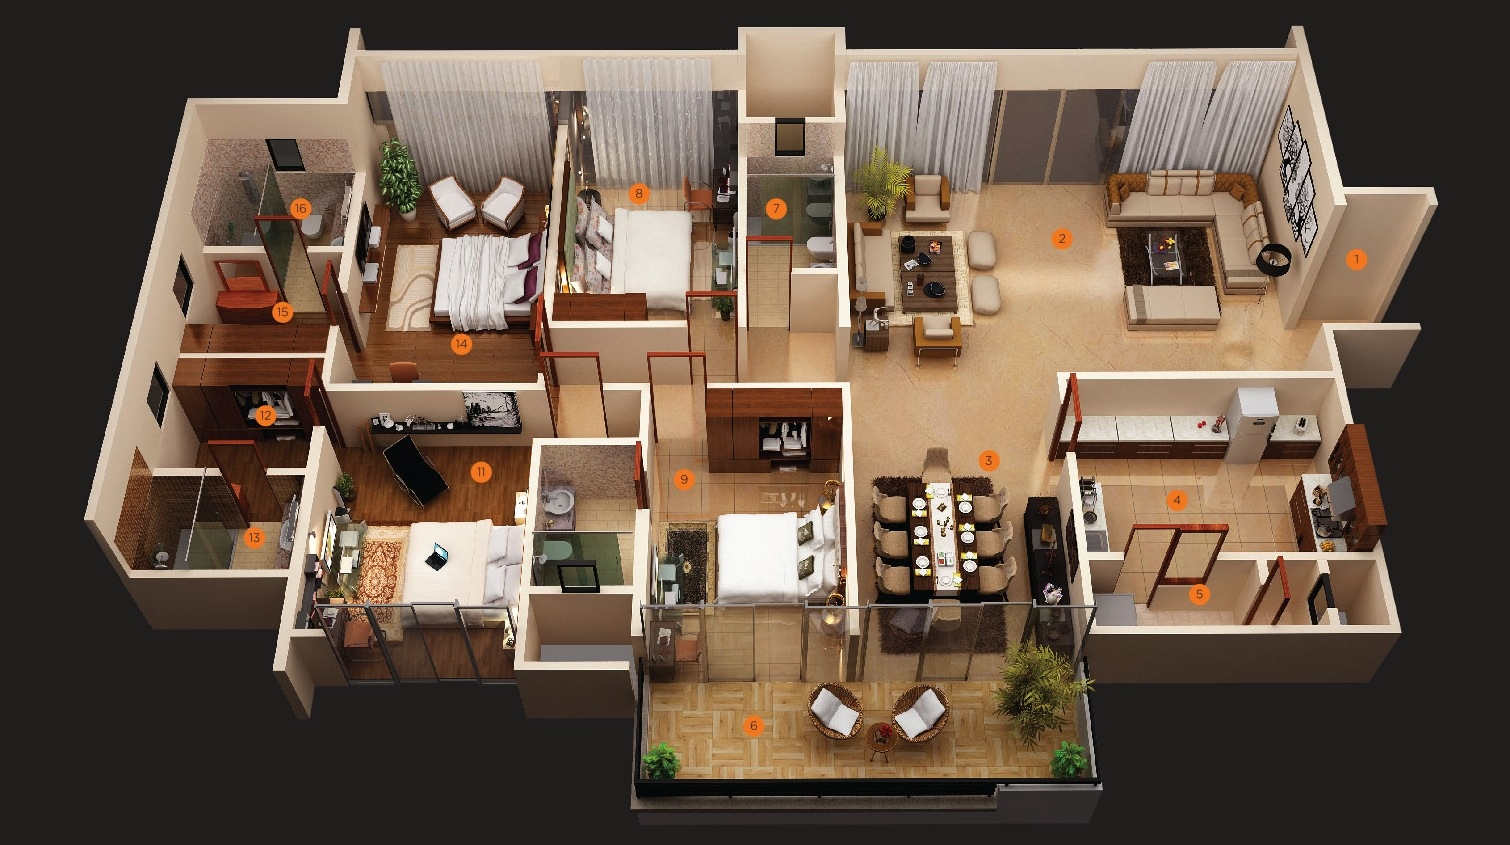 4 Bedroom Floor Plans Modern 4 Bedroom House Plans Decor Units